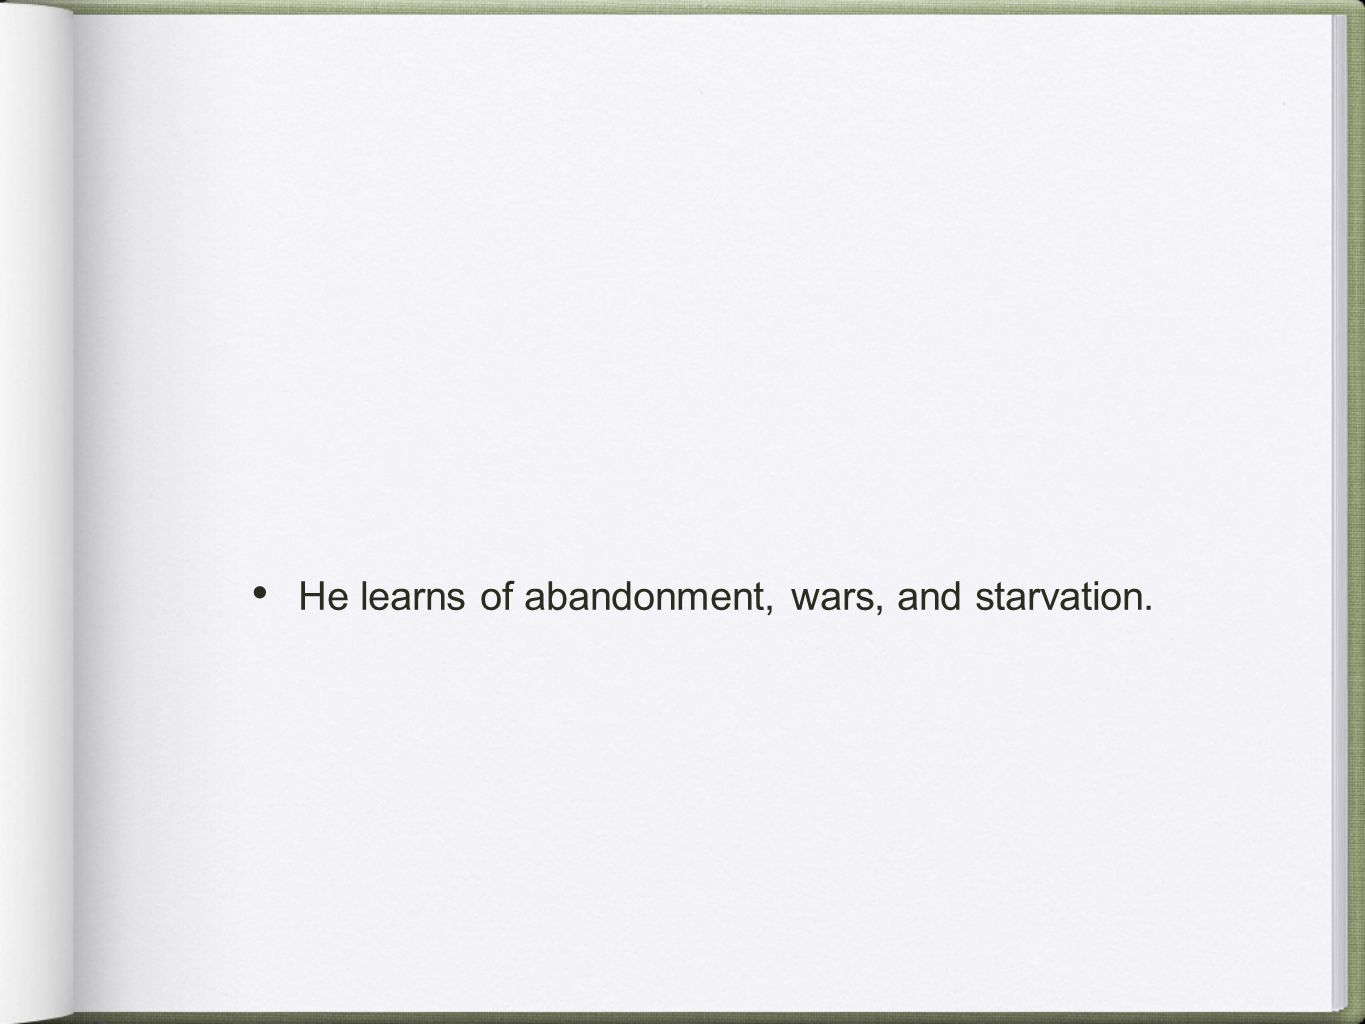 He learns of abandonment, wars, and starvation.